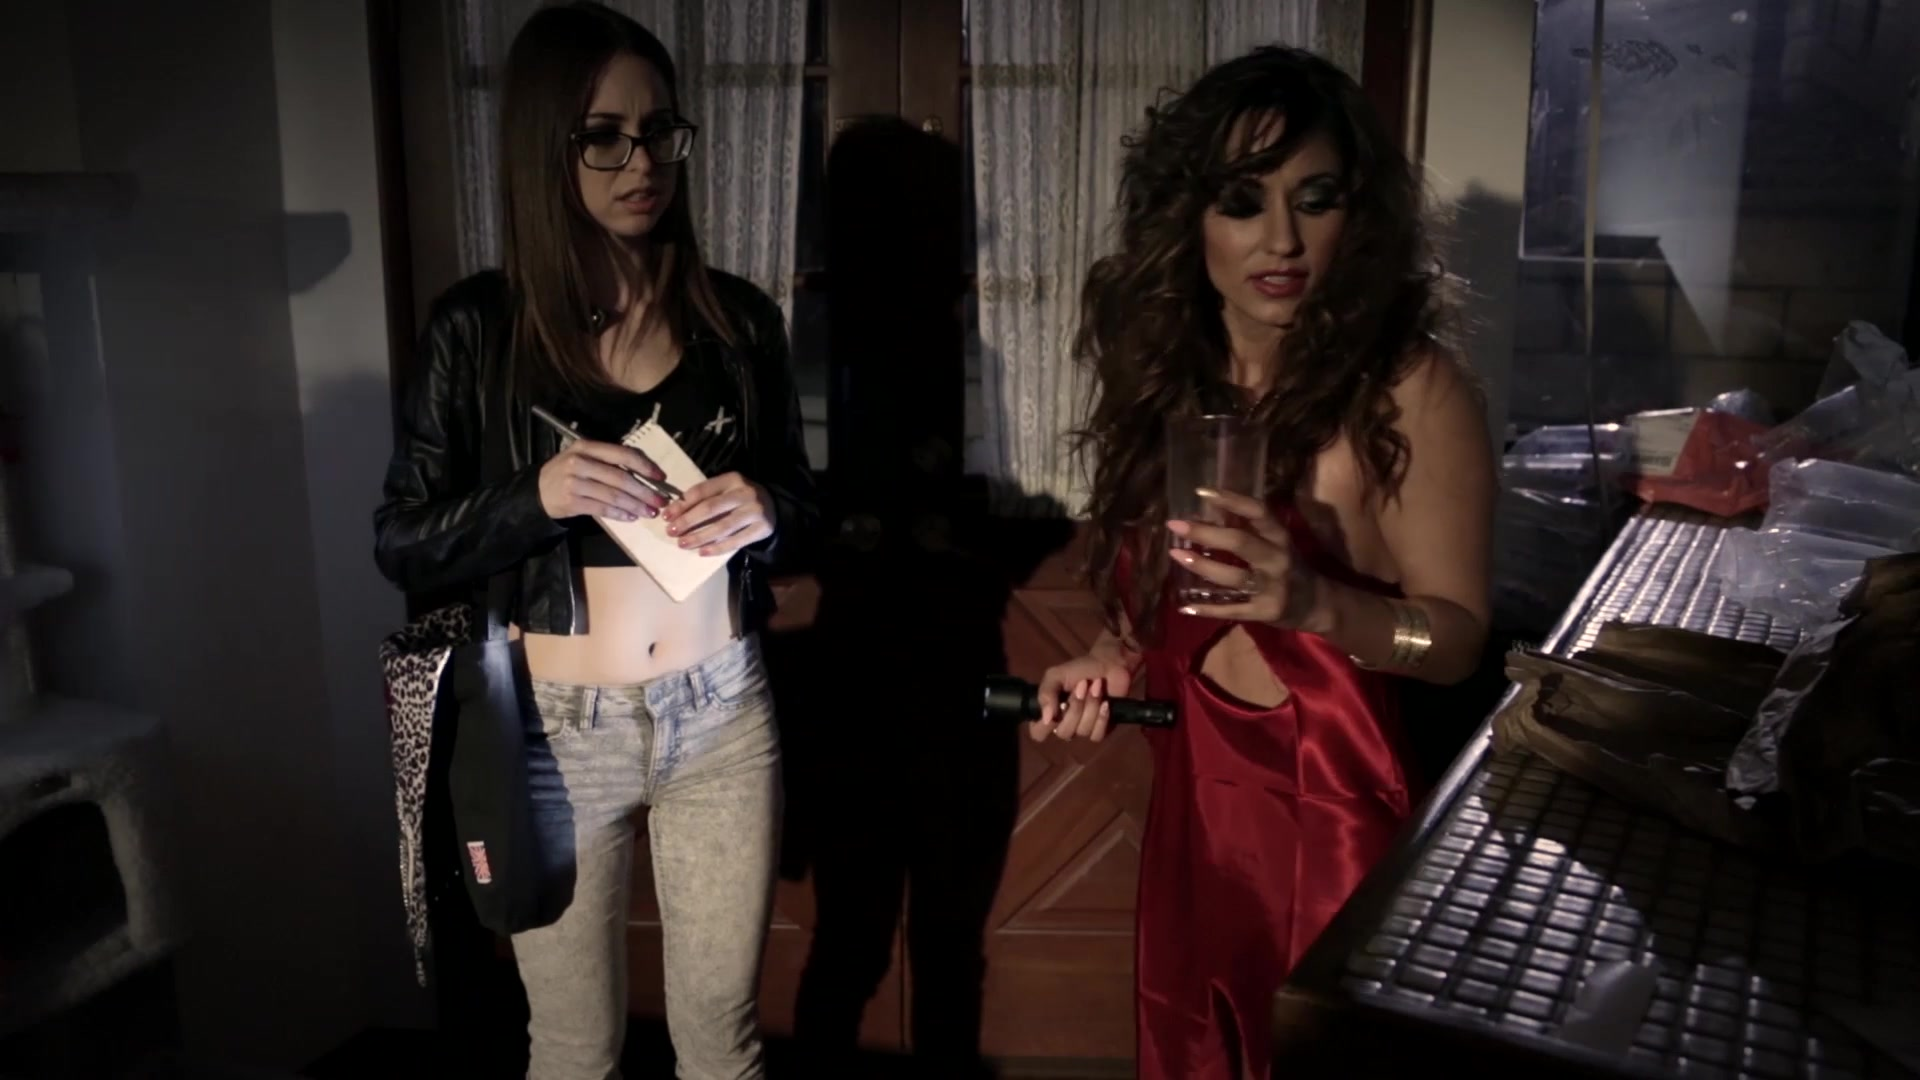 Scene with Reena Sky and Riley Reid - image 6 out of 20